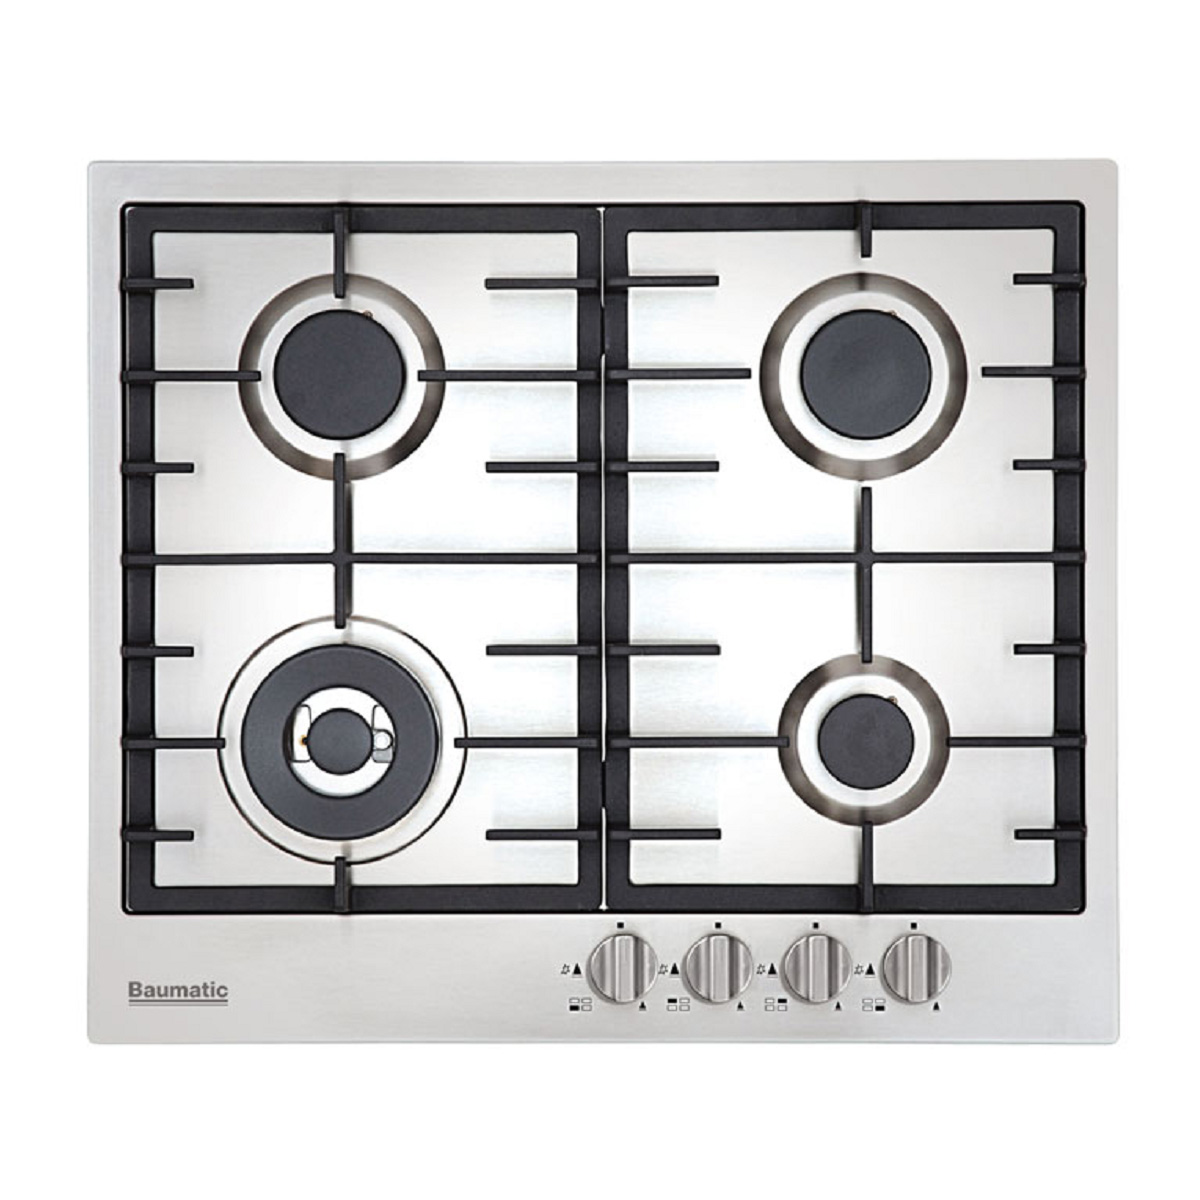 Baumatic BP64S Gas Cooktop